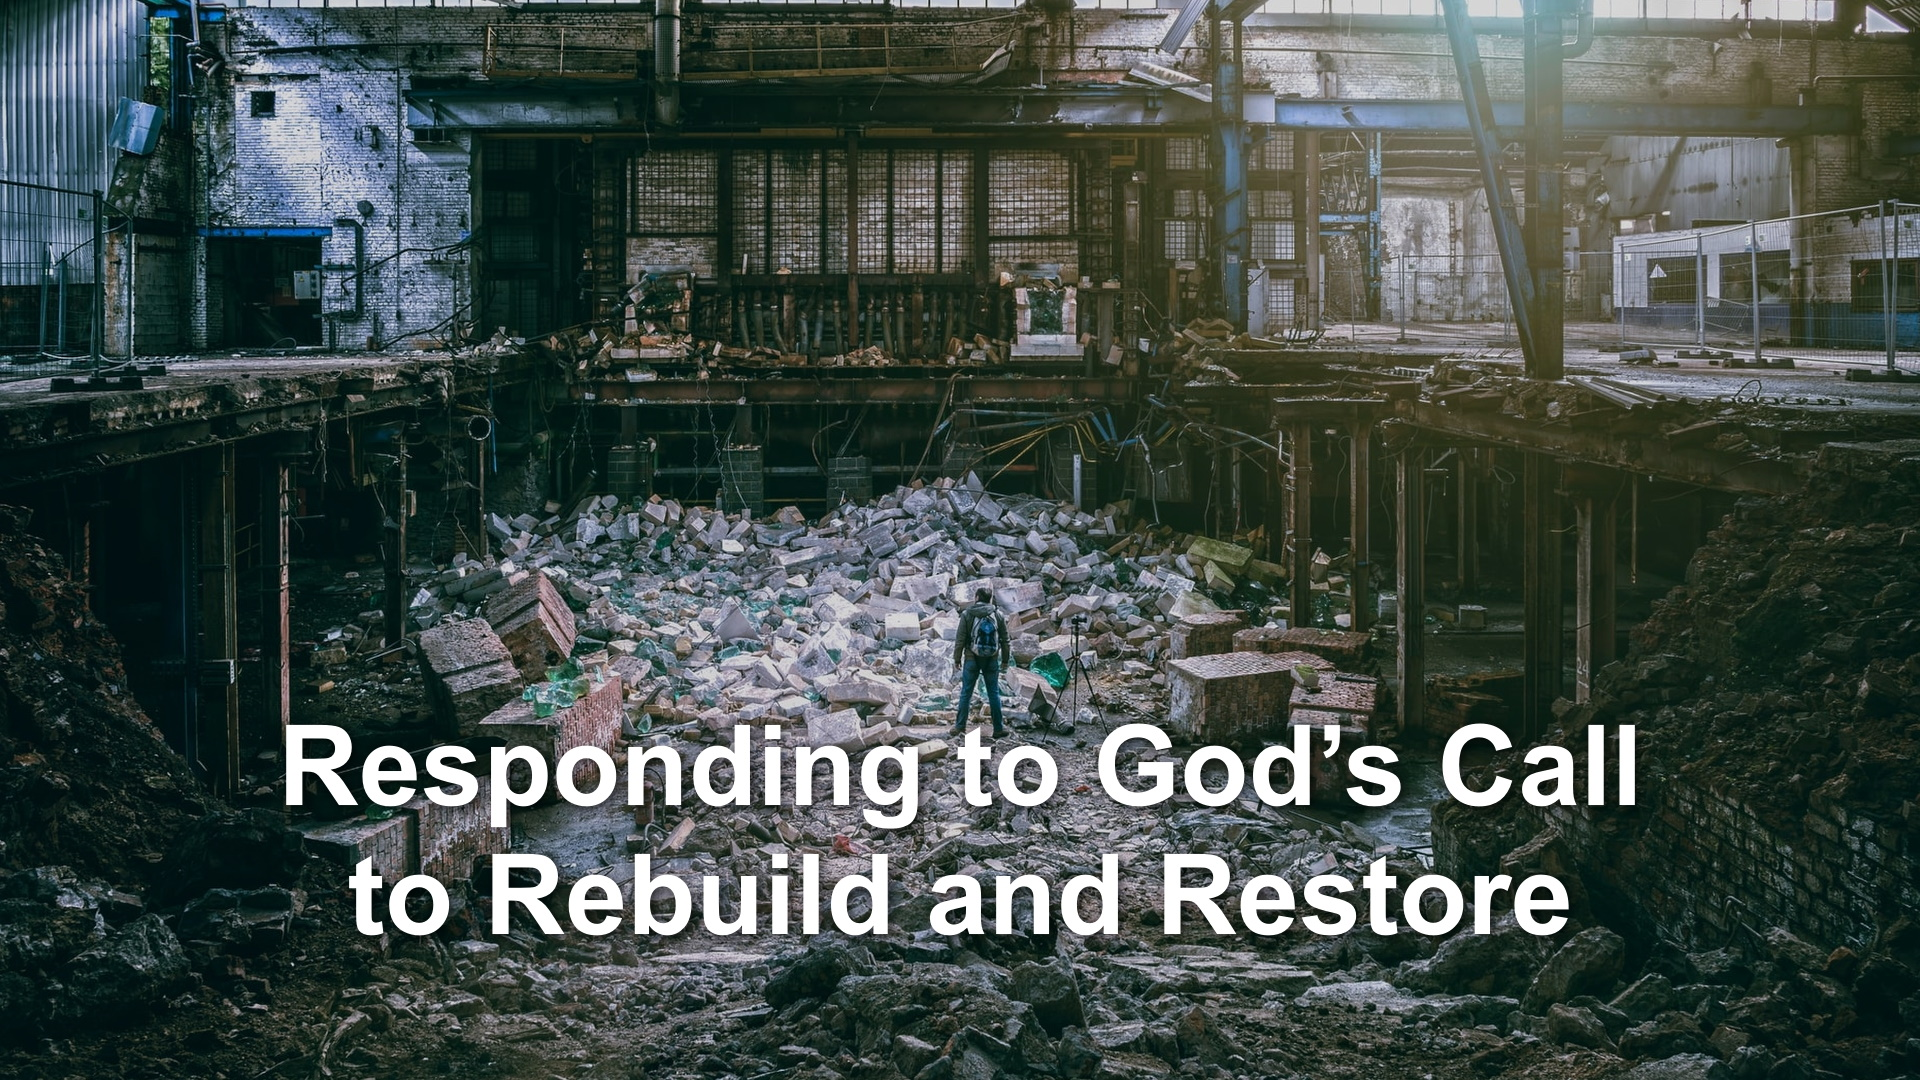 Responding to God's Call to Rebuild and Restore